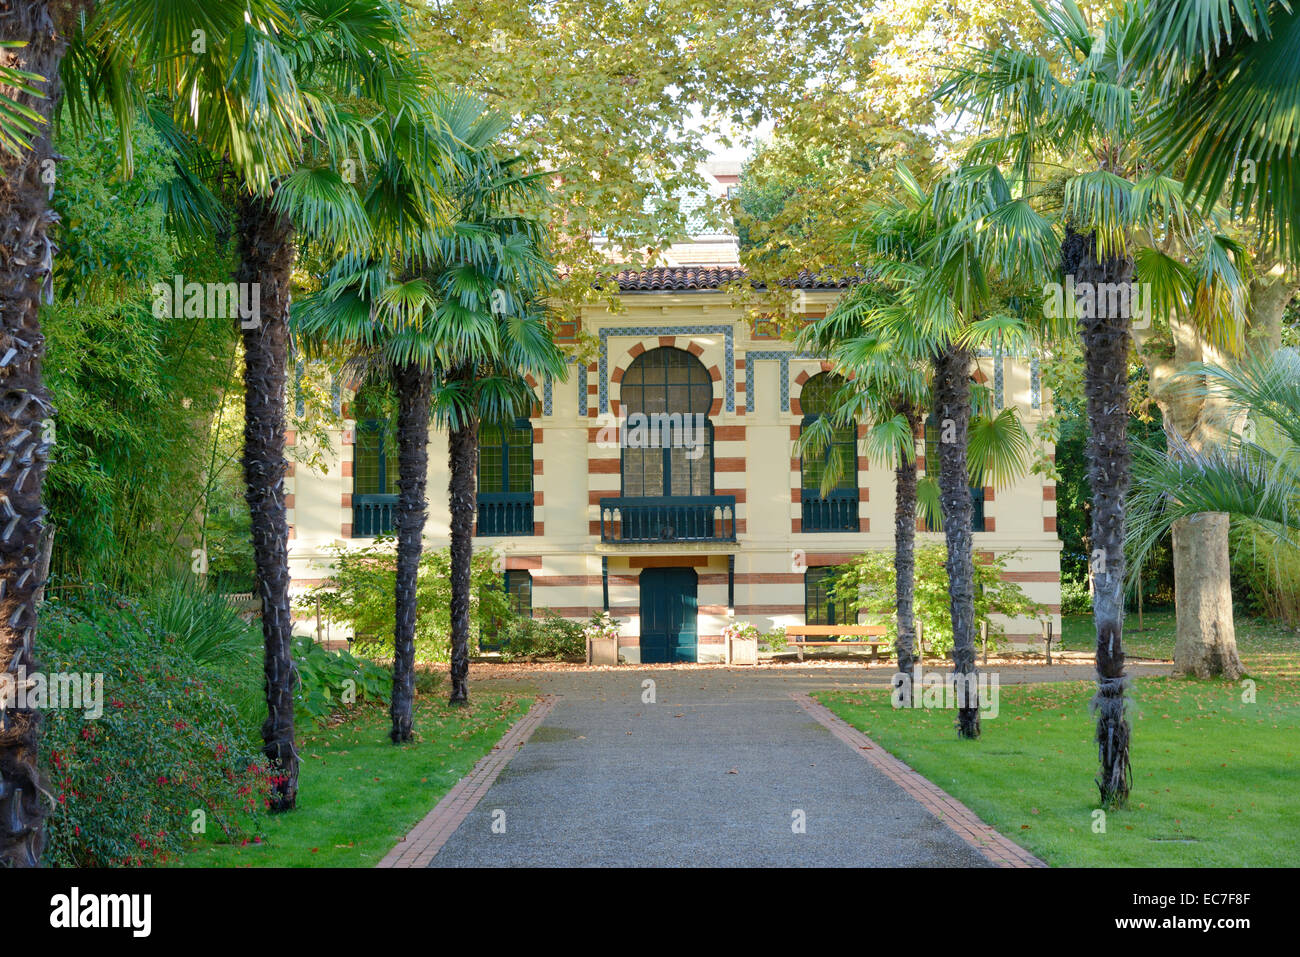 L'architecture mauresque ou style oriental du Musée Labit et Jardins TOULOUSE Haute-Garonne France Photo Stock